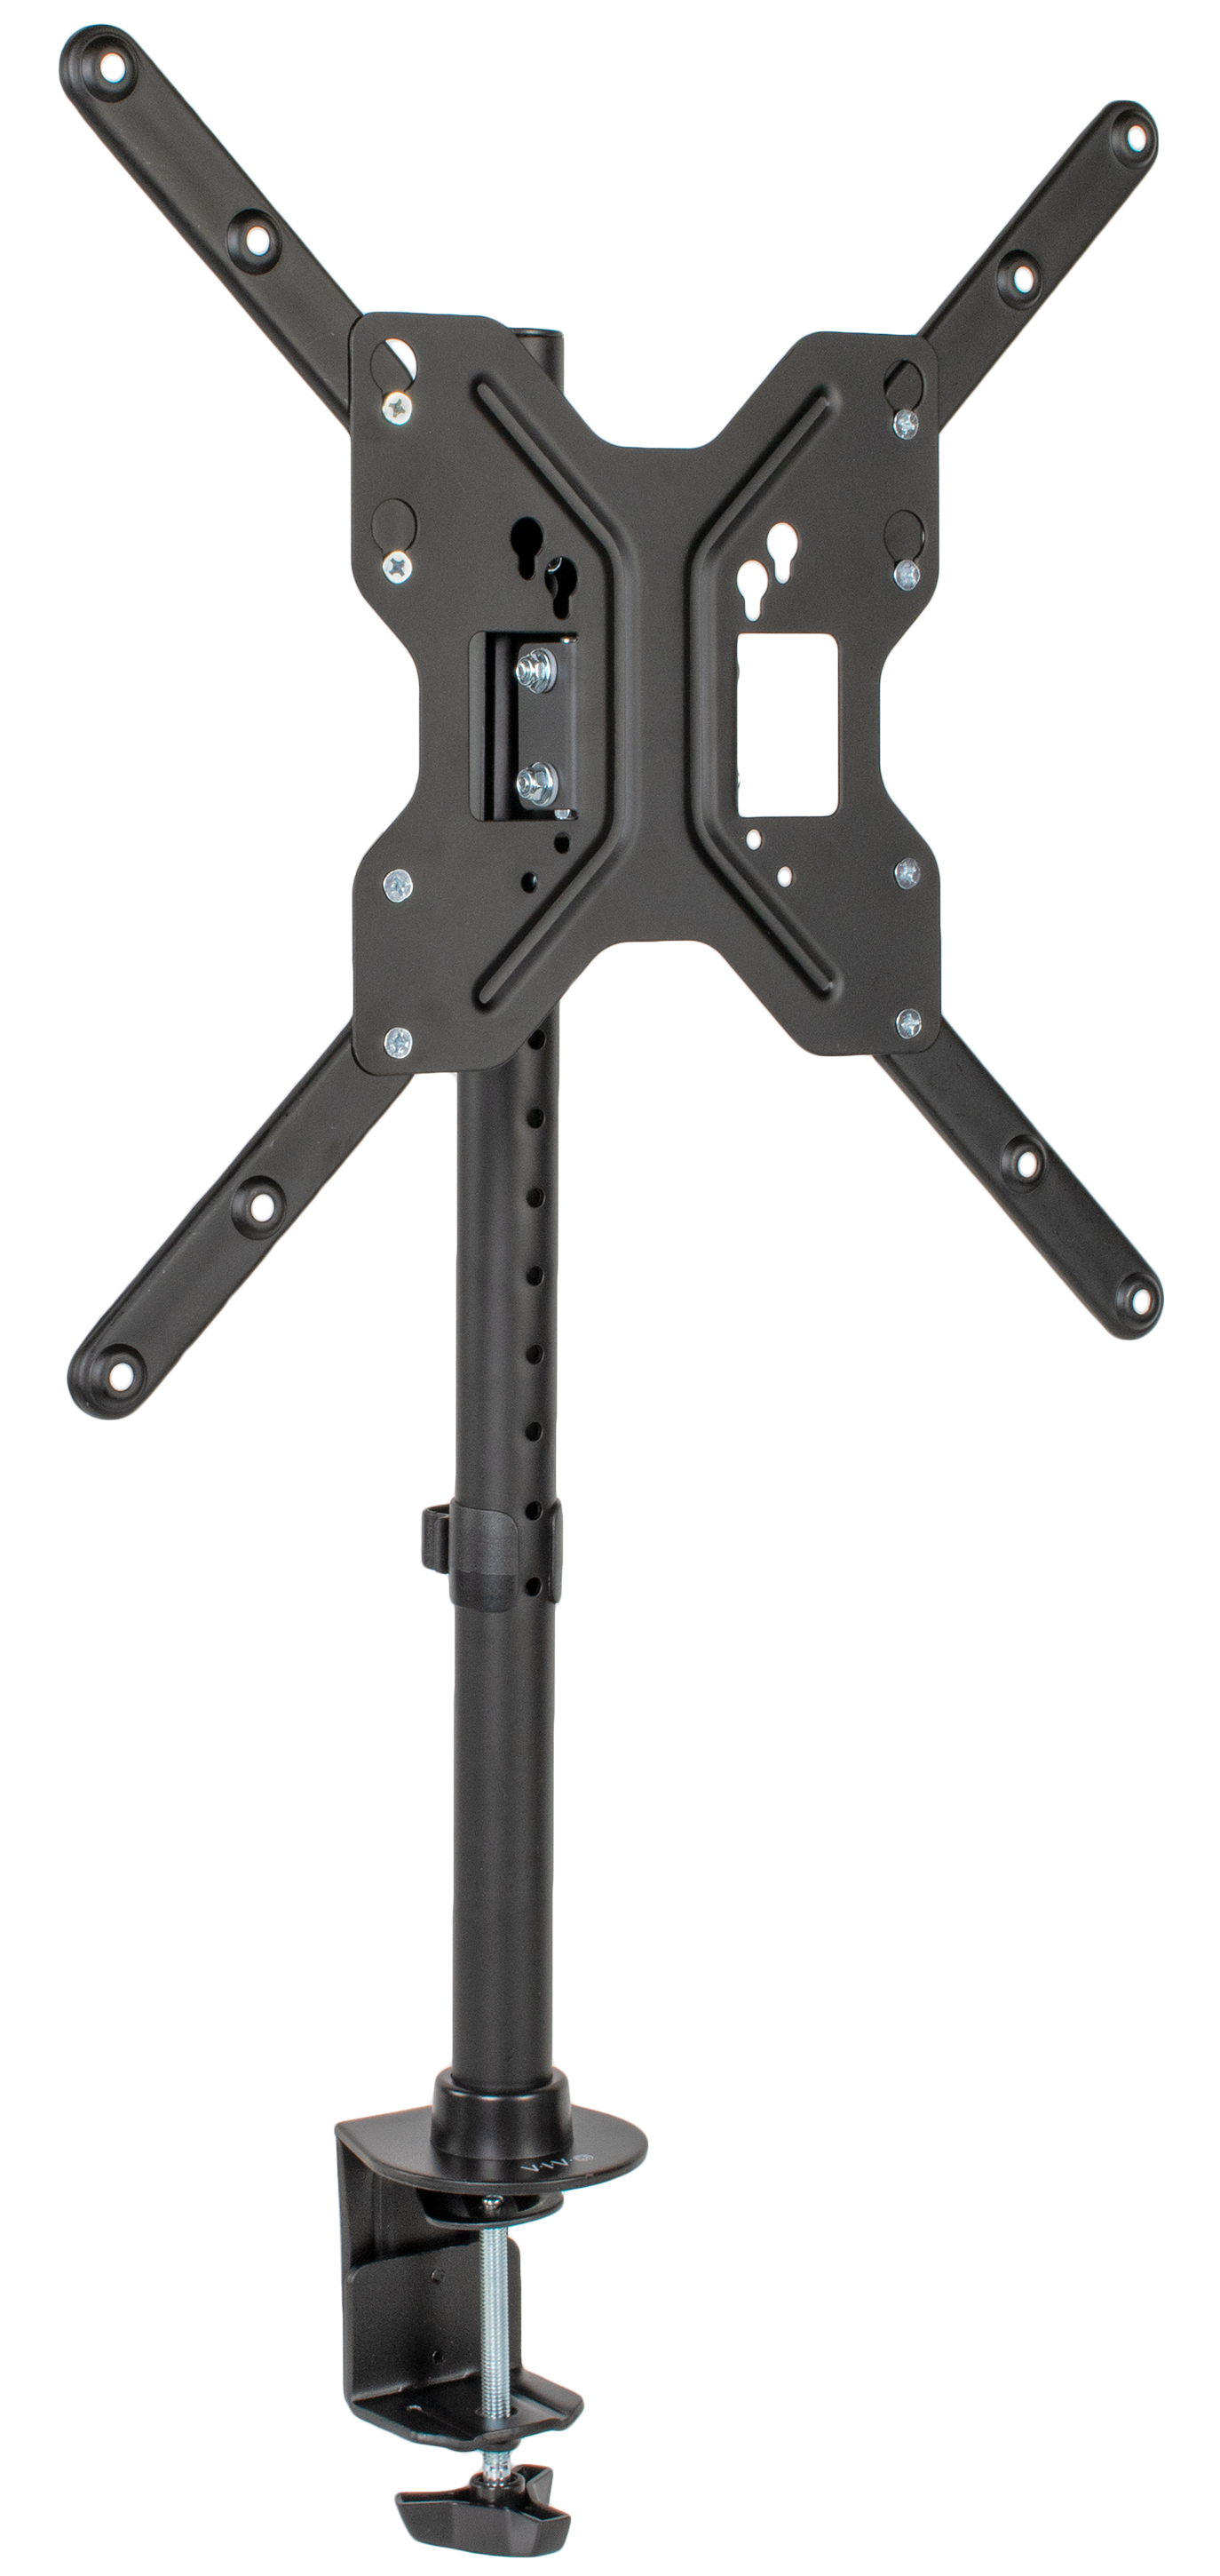 VIVO Black Ultra Wide Screen TV Desk Mount for Screens up to 55"